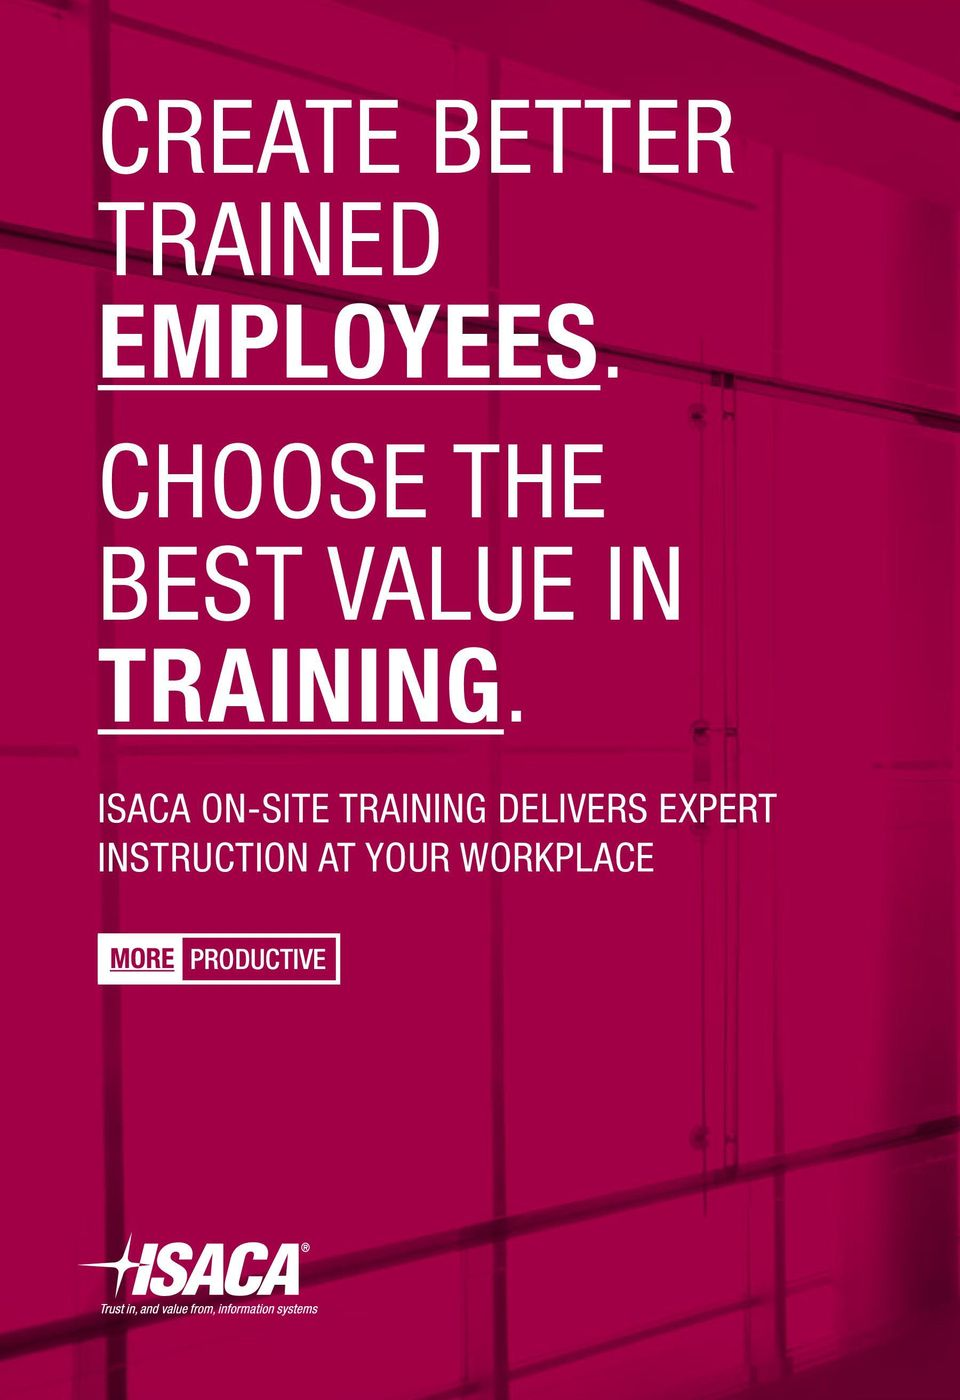 ISACA ON-SITE TRAINING DELIVERS